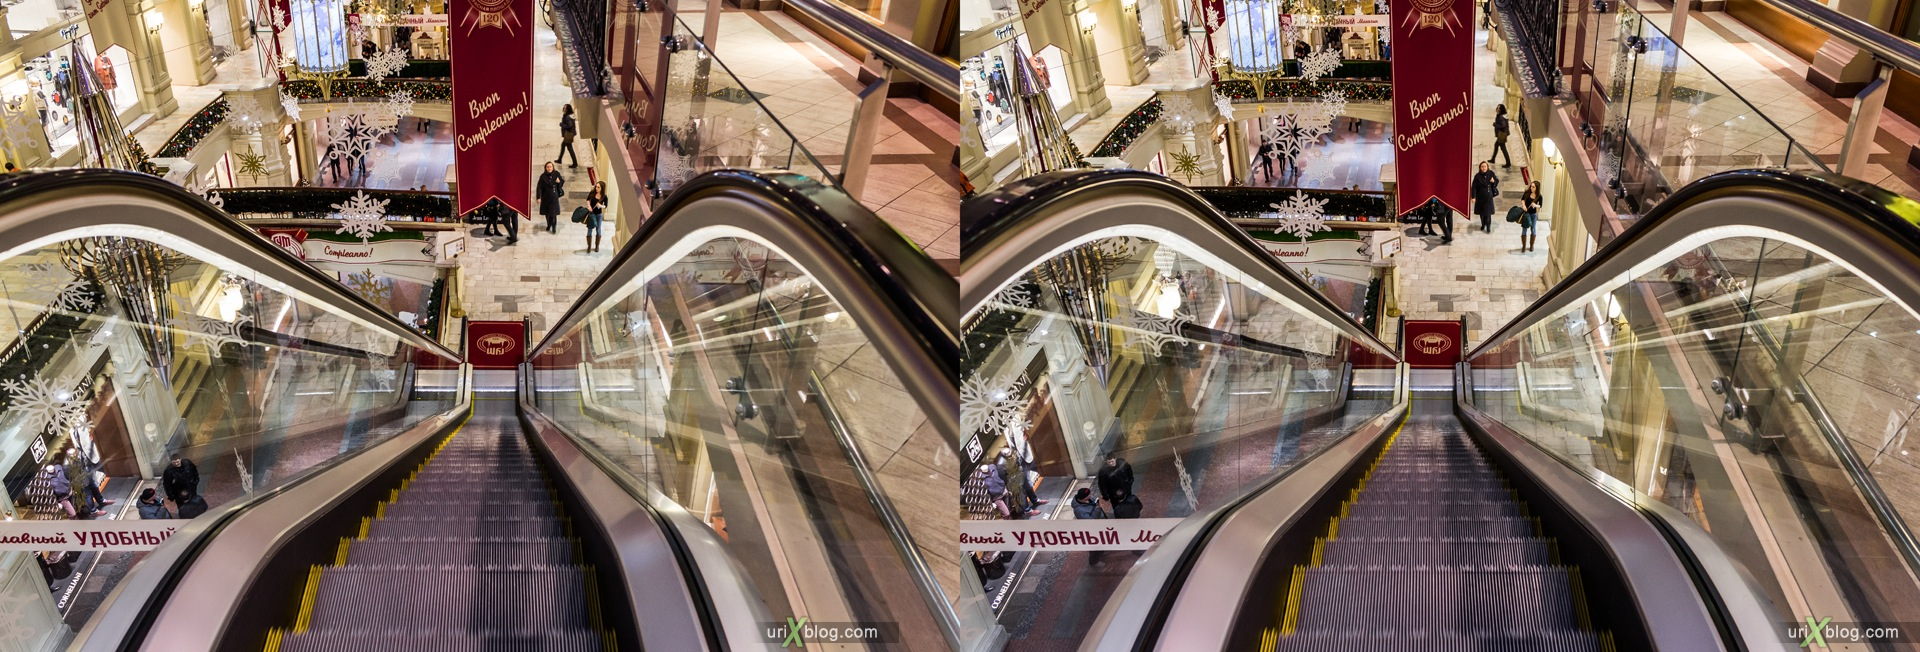 2013, Moscow, Russia, escalator, GUM, shop, mall, 3D, stereo pair, cross-eyed, crossview, cross view stereo pair, stereoscopic